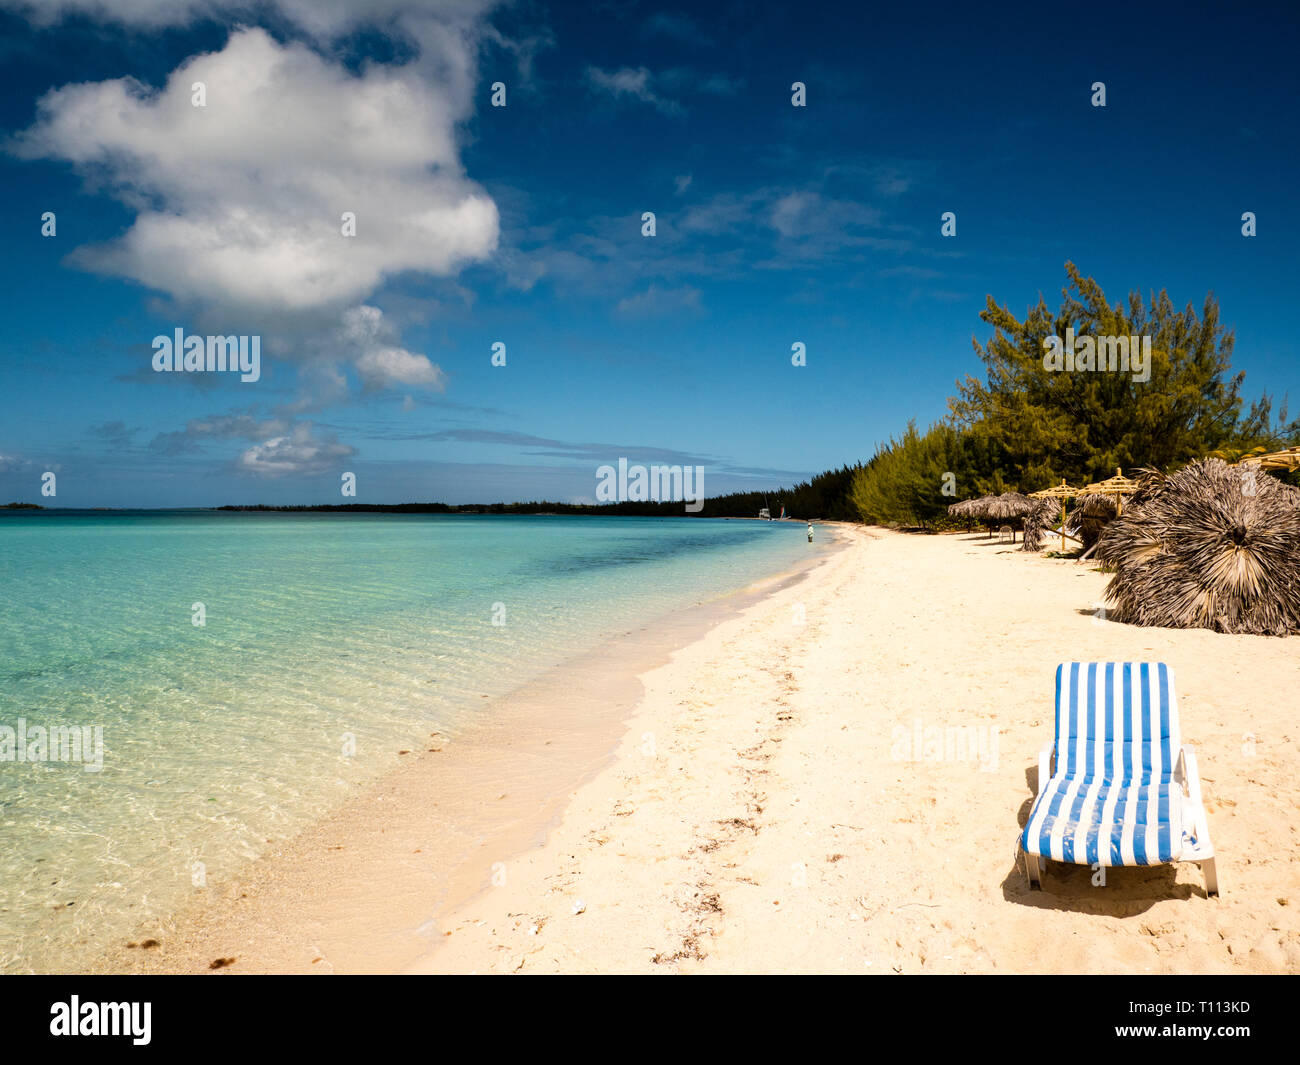 Blue and White Striped Sun Lounger, on Tropical Beach, Governors Harbour, Eleuthera, The Bahamas, The Caribbean. - Stock Image